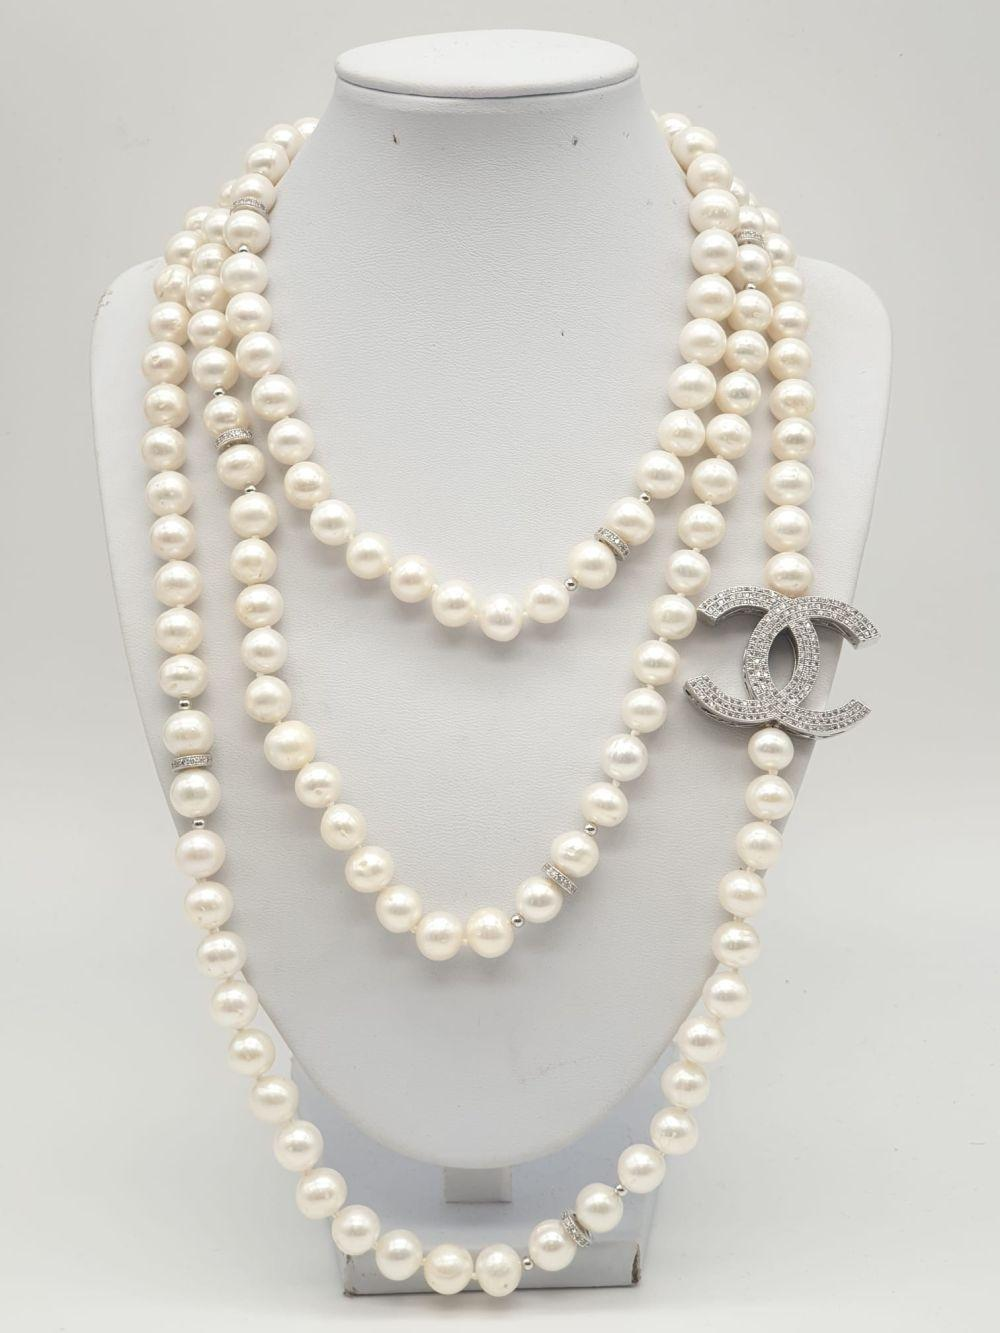 A Chanel-Style White Metal Pearl Rope Necklace. 150cm.